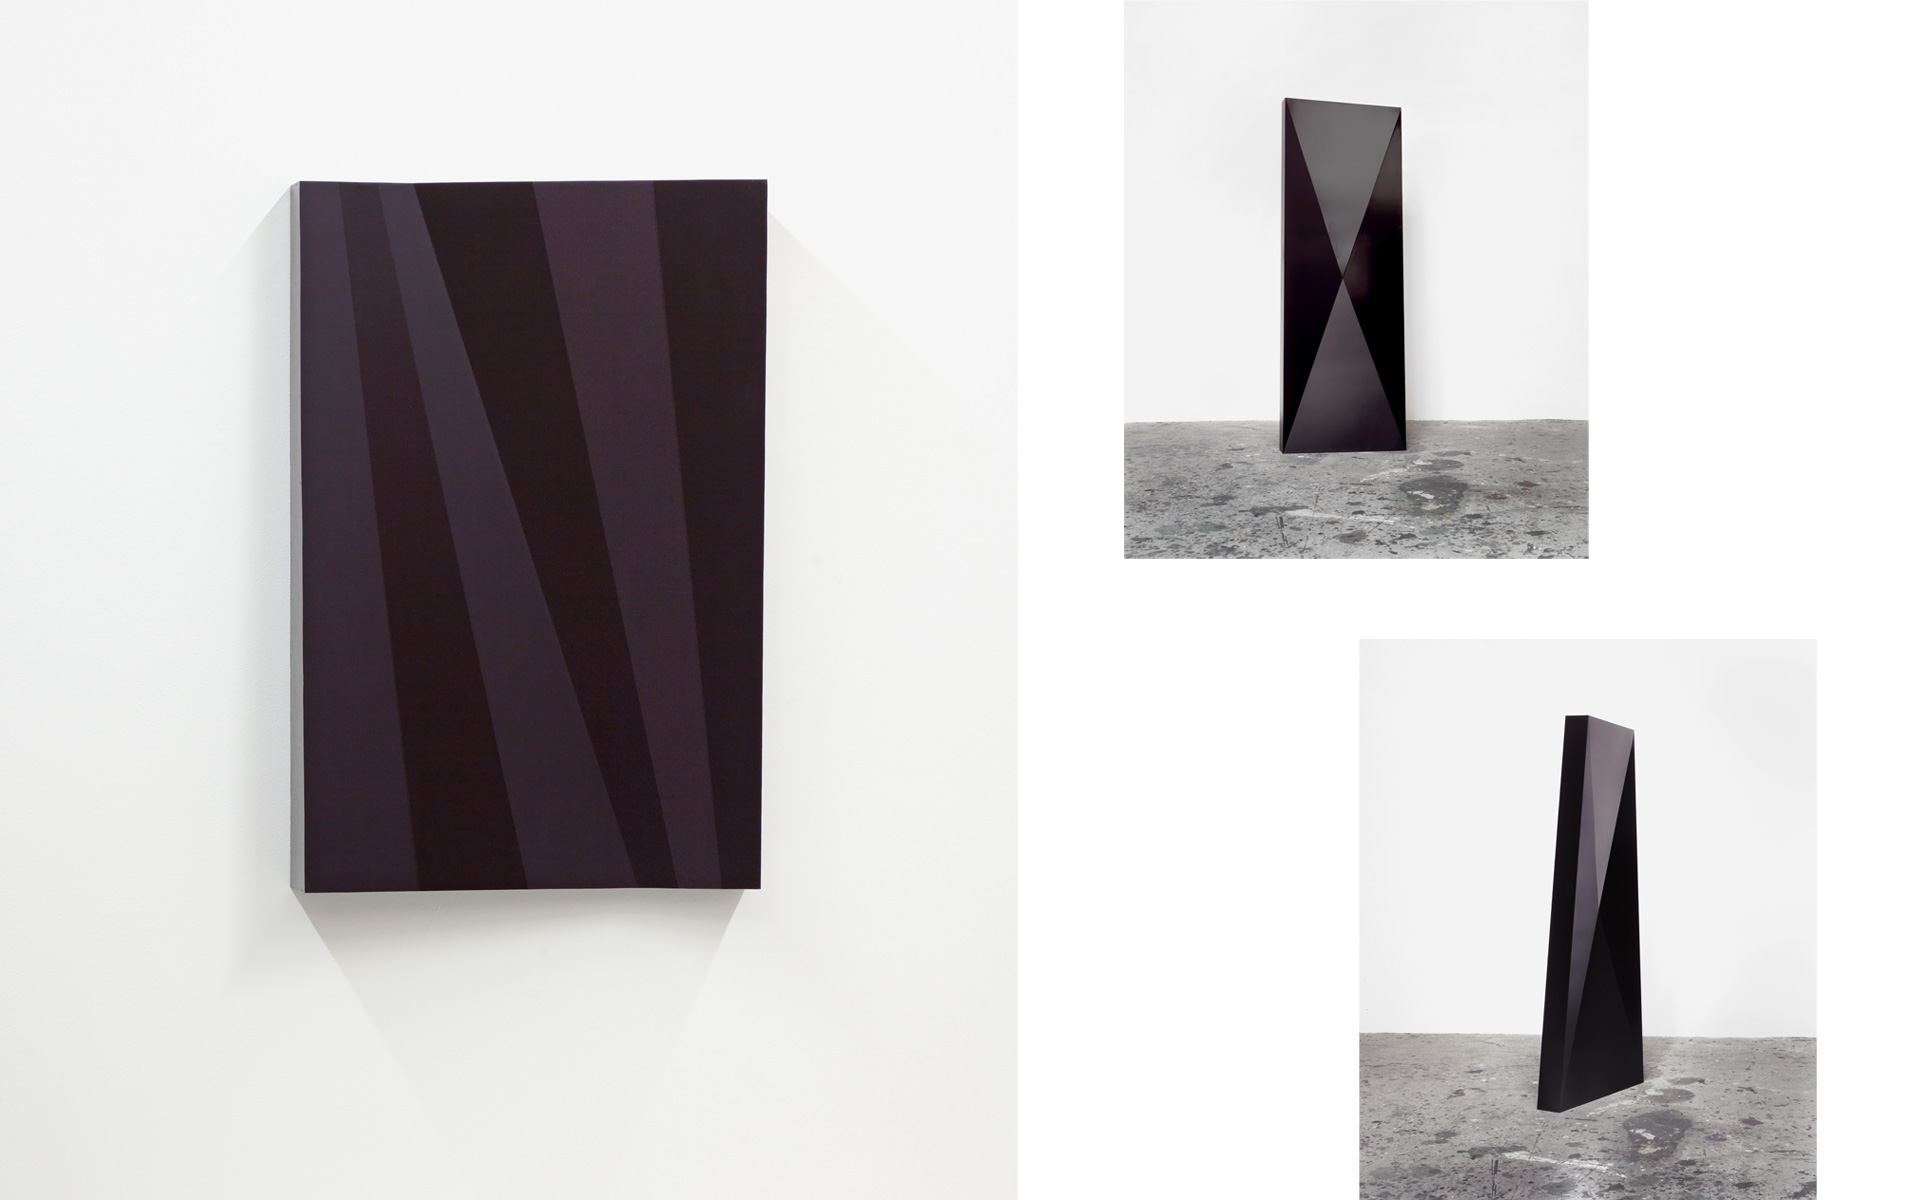 left: O. T. (schwarz/violett), 1998 Acrylic on steel 89.5 × 58.5 × 10 cm / right: ZONE O, 1999 Lacquer on steel 200 × 70 × 10 cm different perspectives - Photos: Christoph Valentien